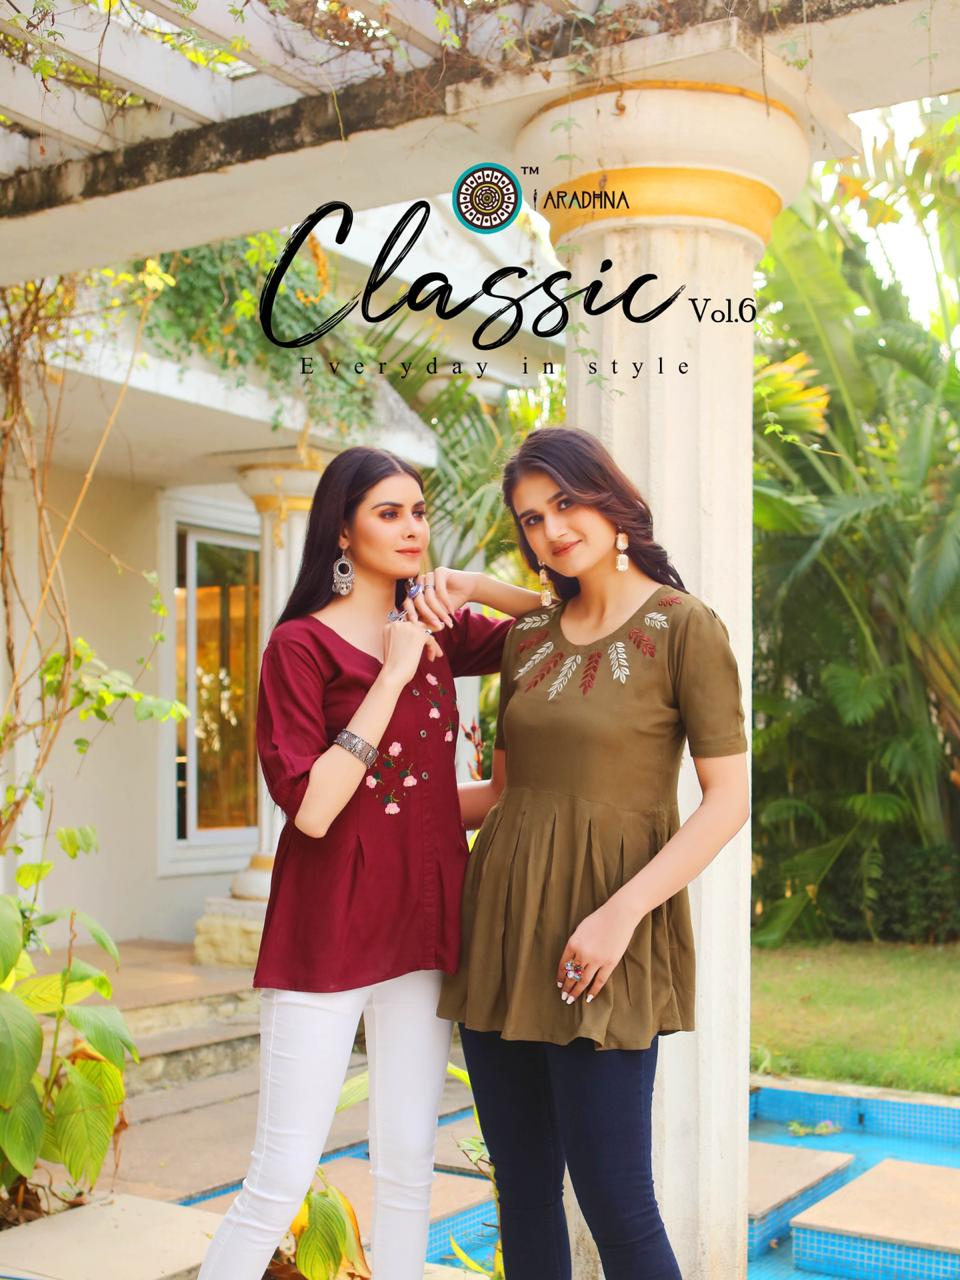 Aradhna Launch Classic Vol 6 Heavy Rayon Embroidery Westerns Short Tops For Girls